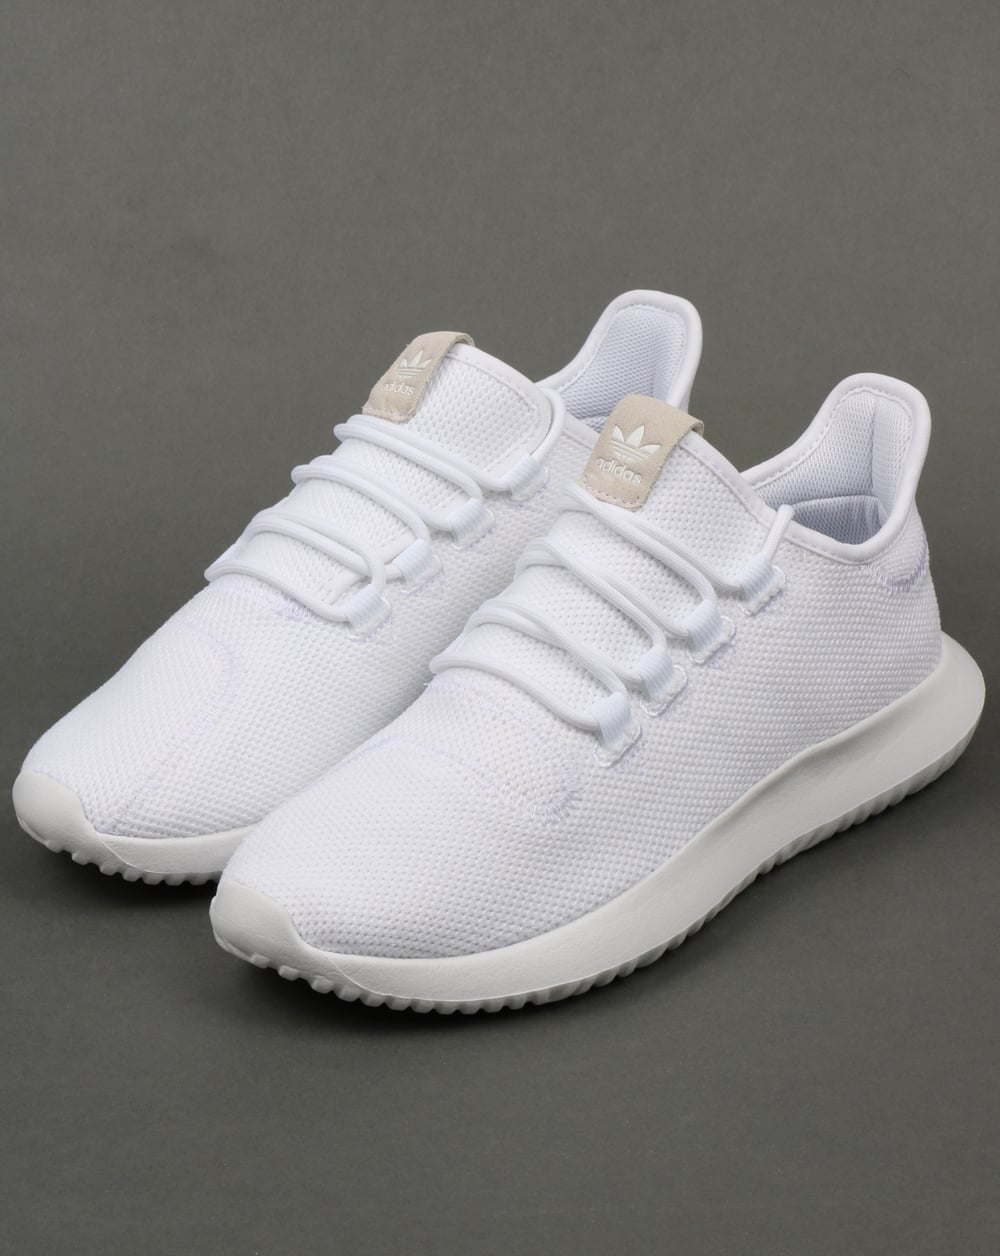 lowest price 1e384 fac69 Adidas Tubular Shadow Trainers White